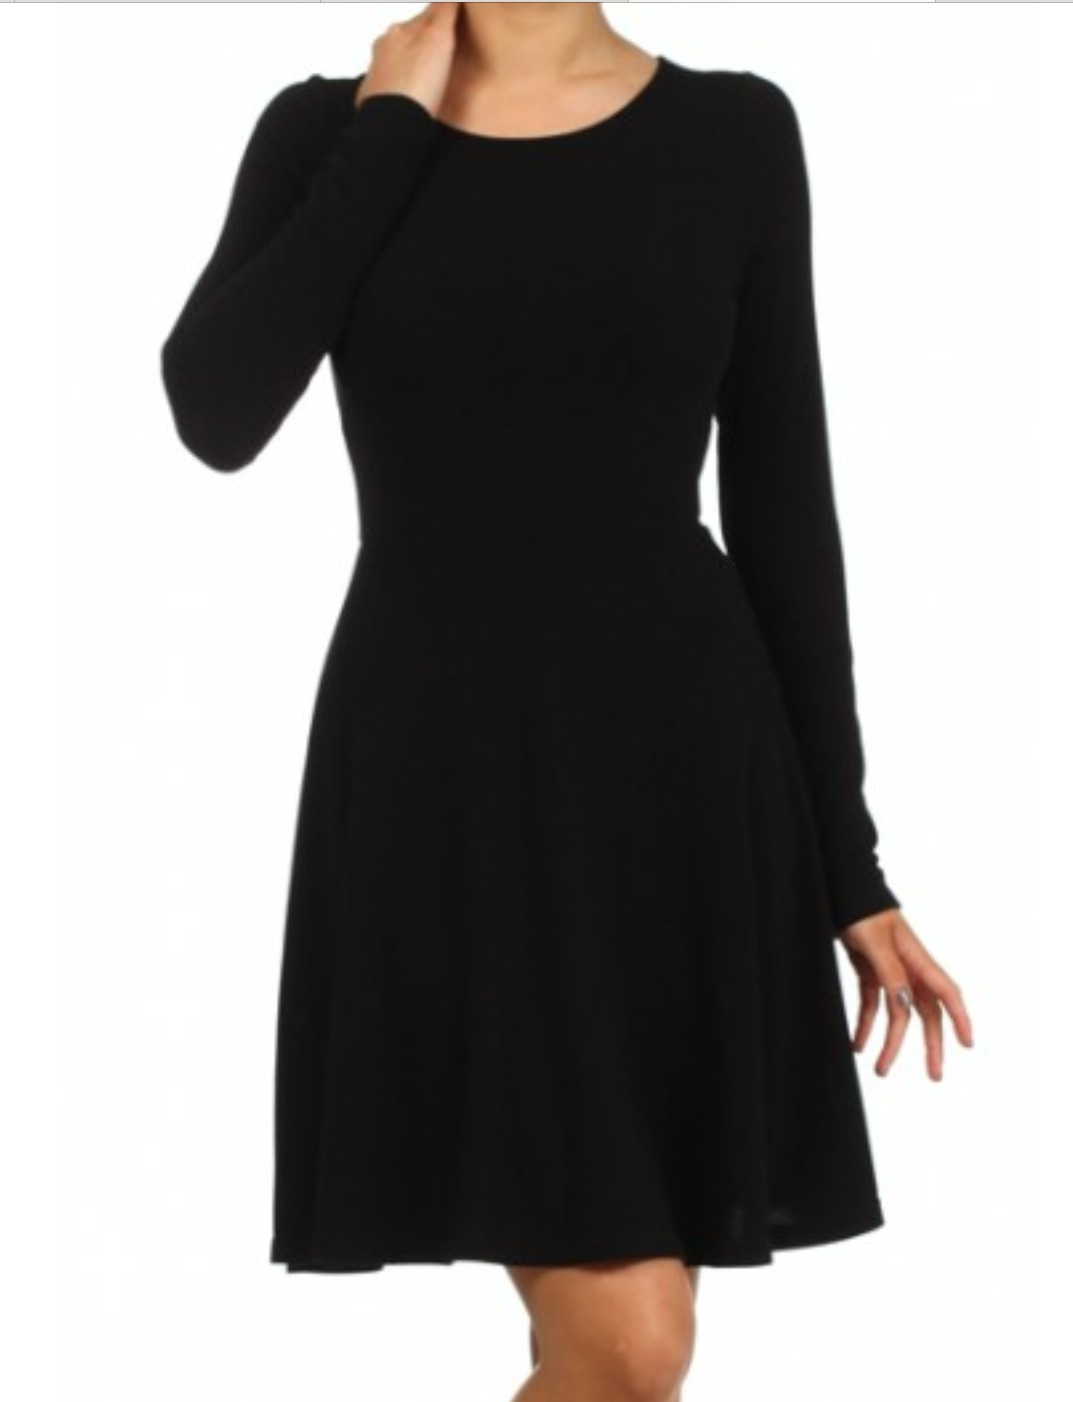 Black everly dress available at every girl boutique